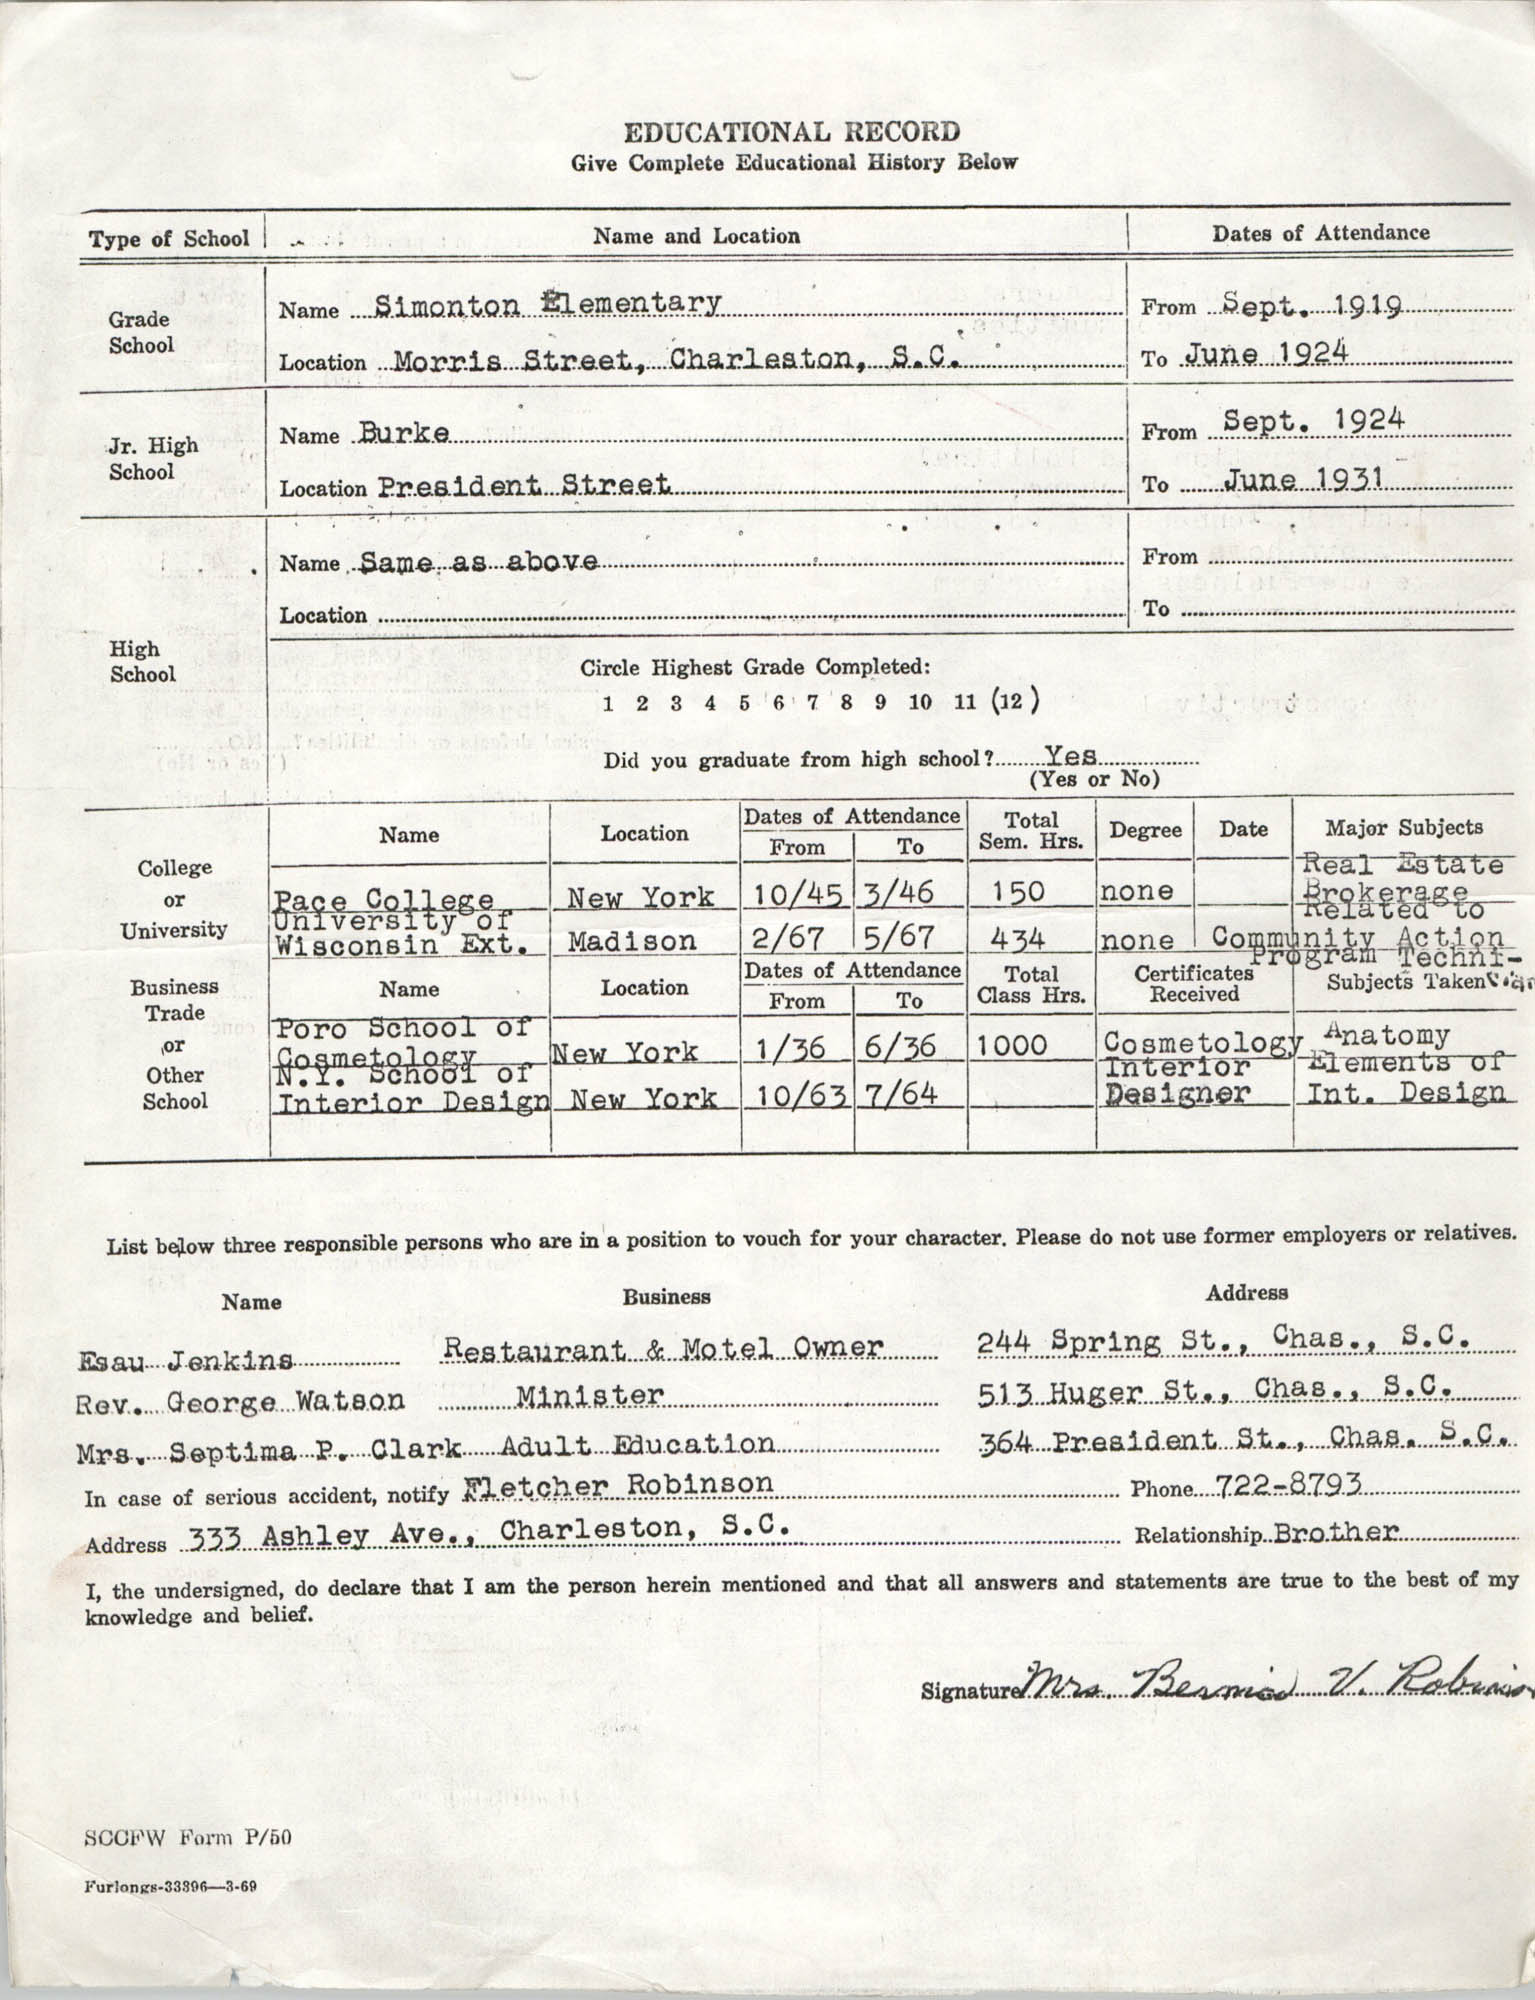 Bernice V. Robinson's Education Record